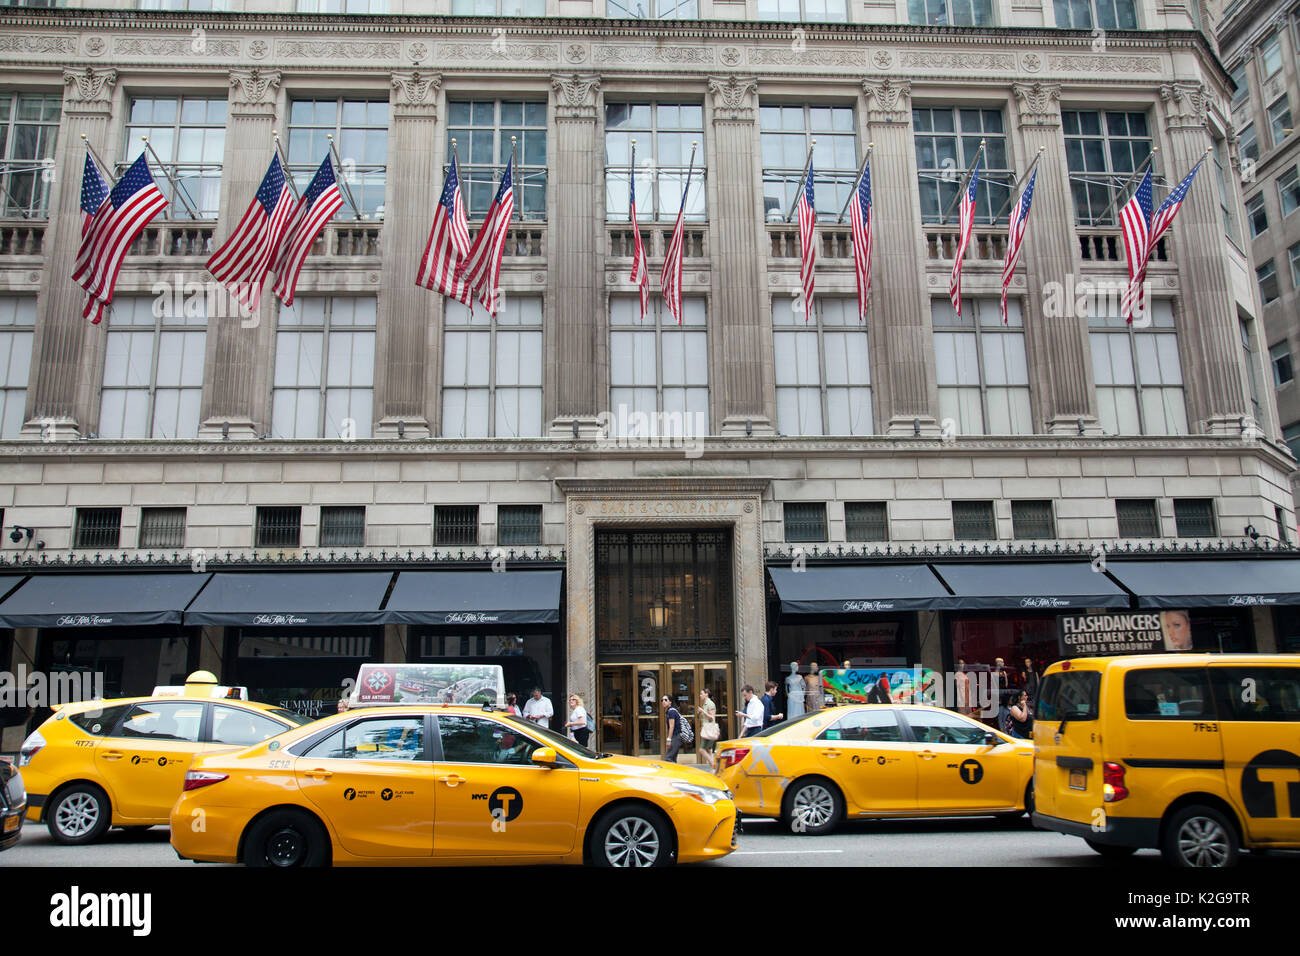 Saks Fifth Avenue USA. The operation of Saks Fifth Avenue in the US is natural. Saks Fifth Avenue USA has a network of shops, which you can find in majority of American towns, maybe even in your own. You can find a complete list of shops, opening hours and maps below on this page.